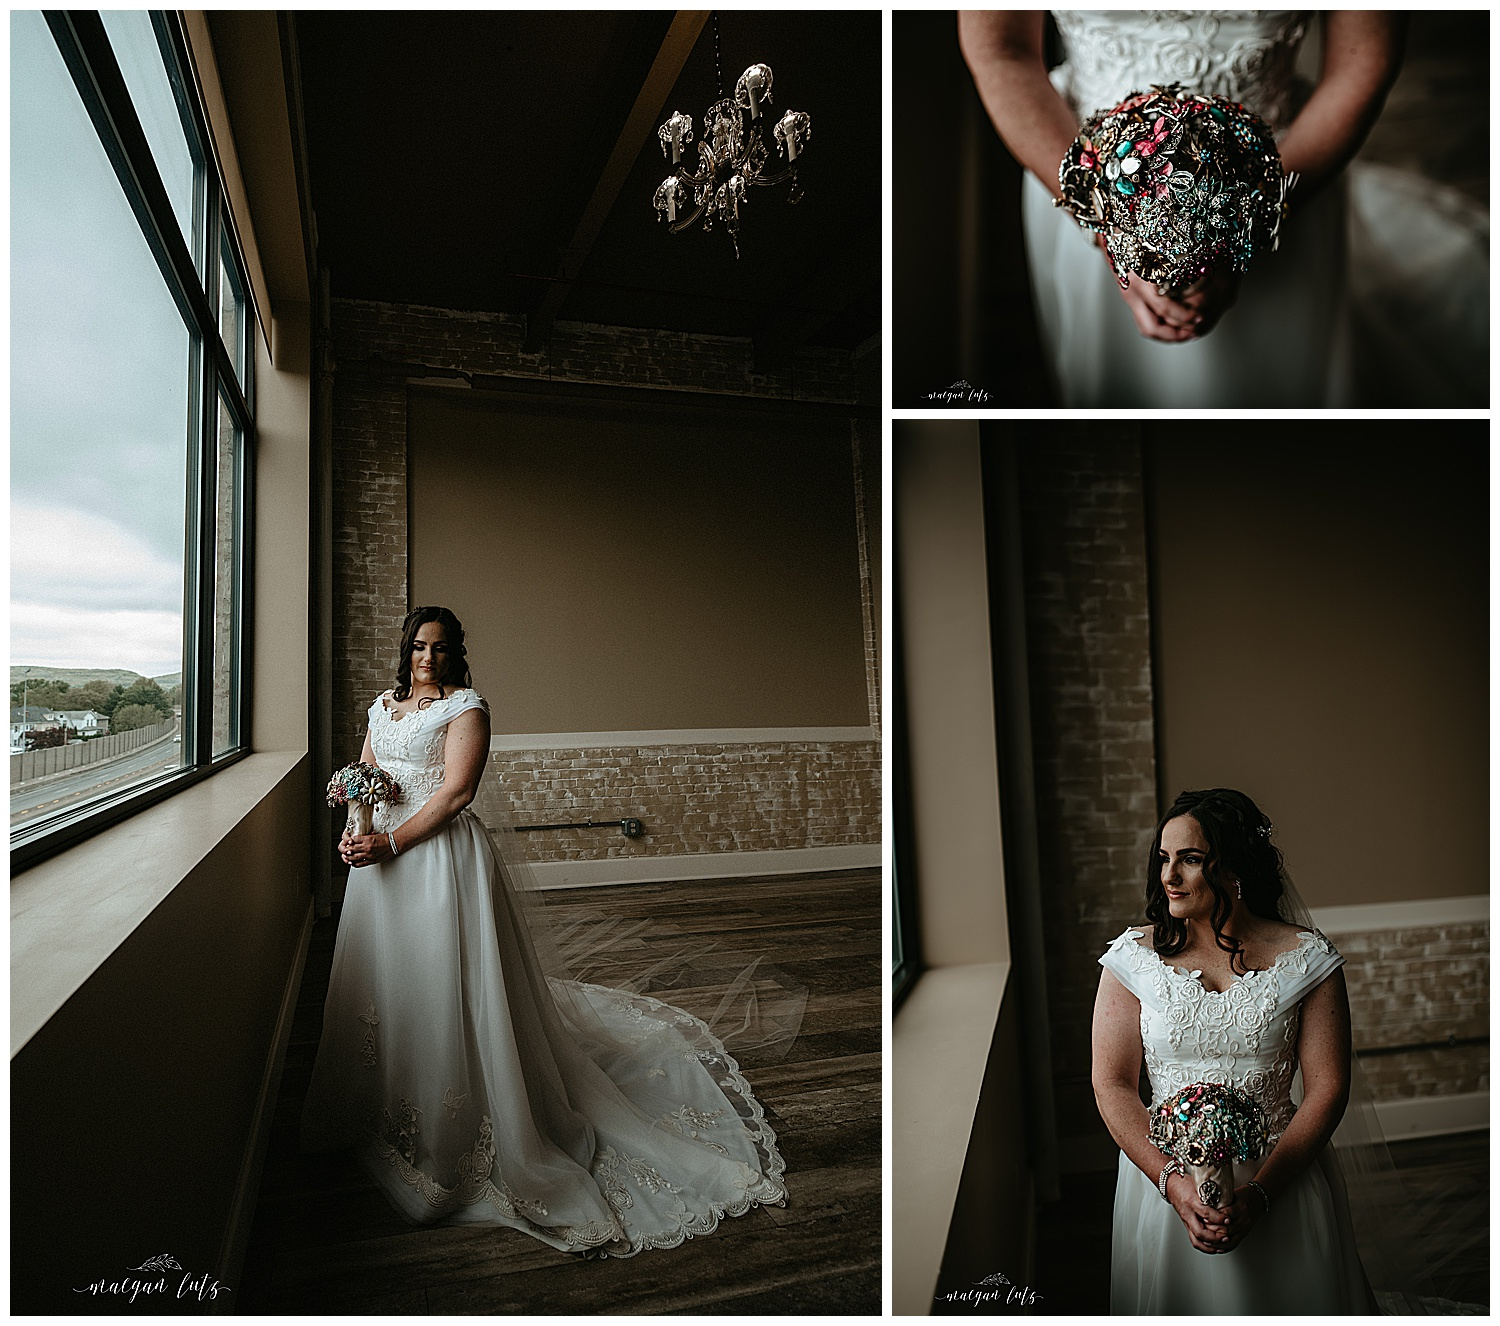 NEPA-Lehigh-Valley-Wedding-Photographer-at-the-room-at-900-Wilkes-Barre-PA_0007.jpg